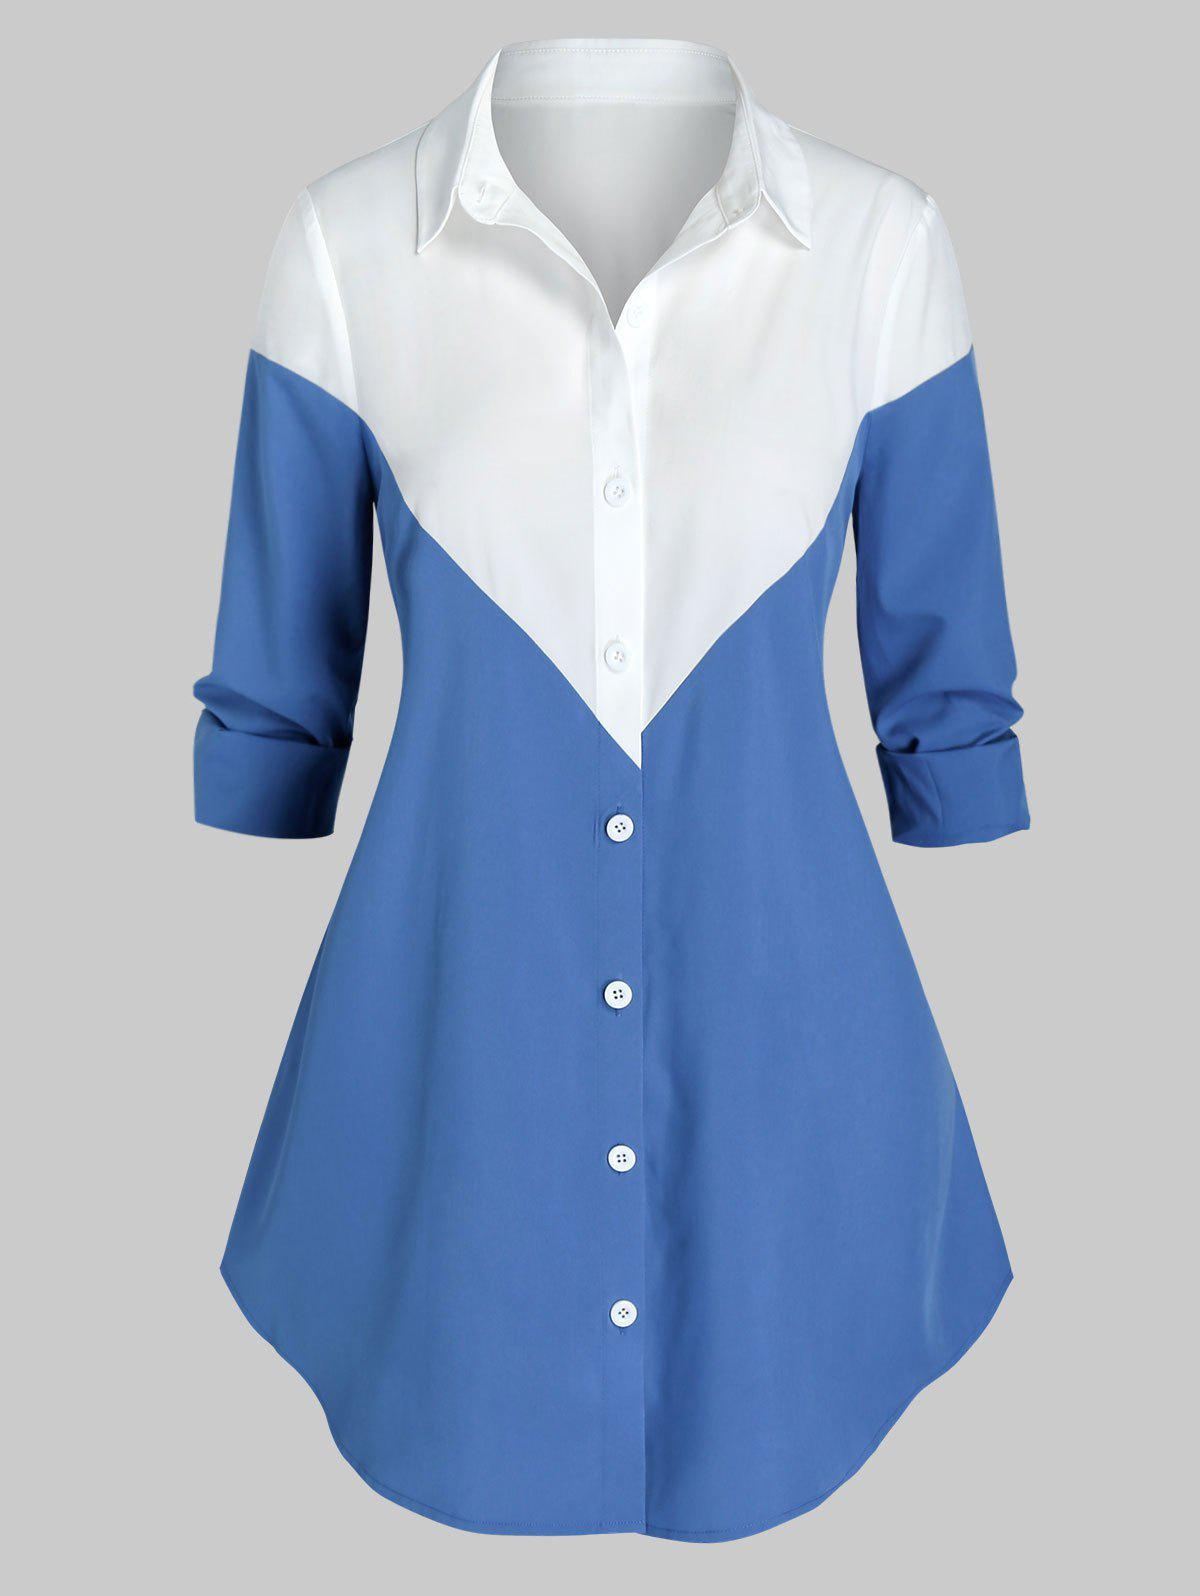 Plus Size Two Tone Curved Shirt - multicolor 3X